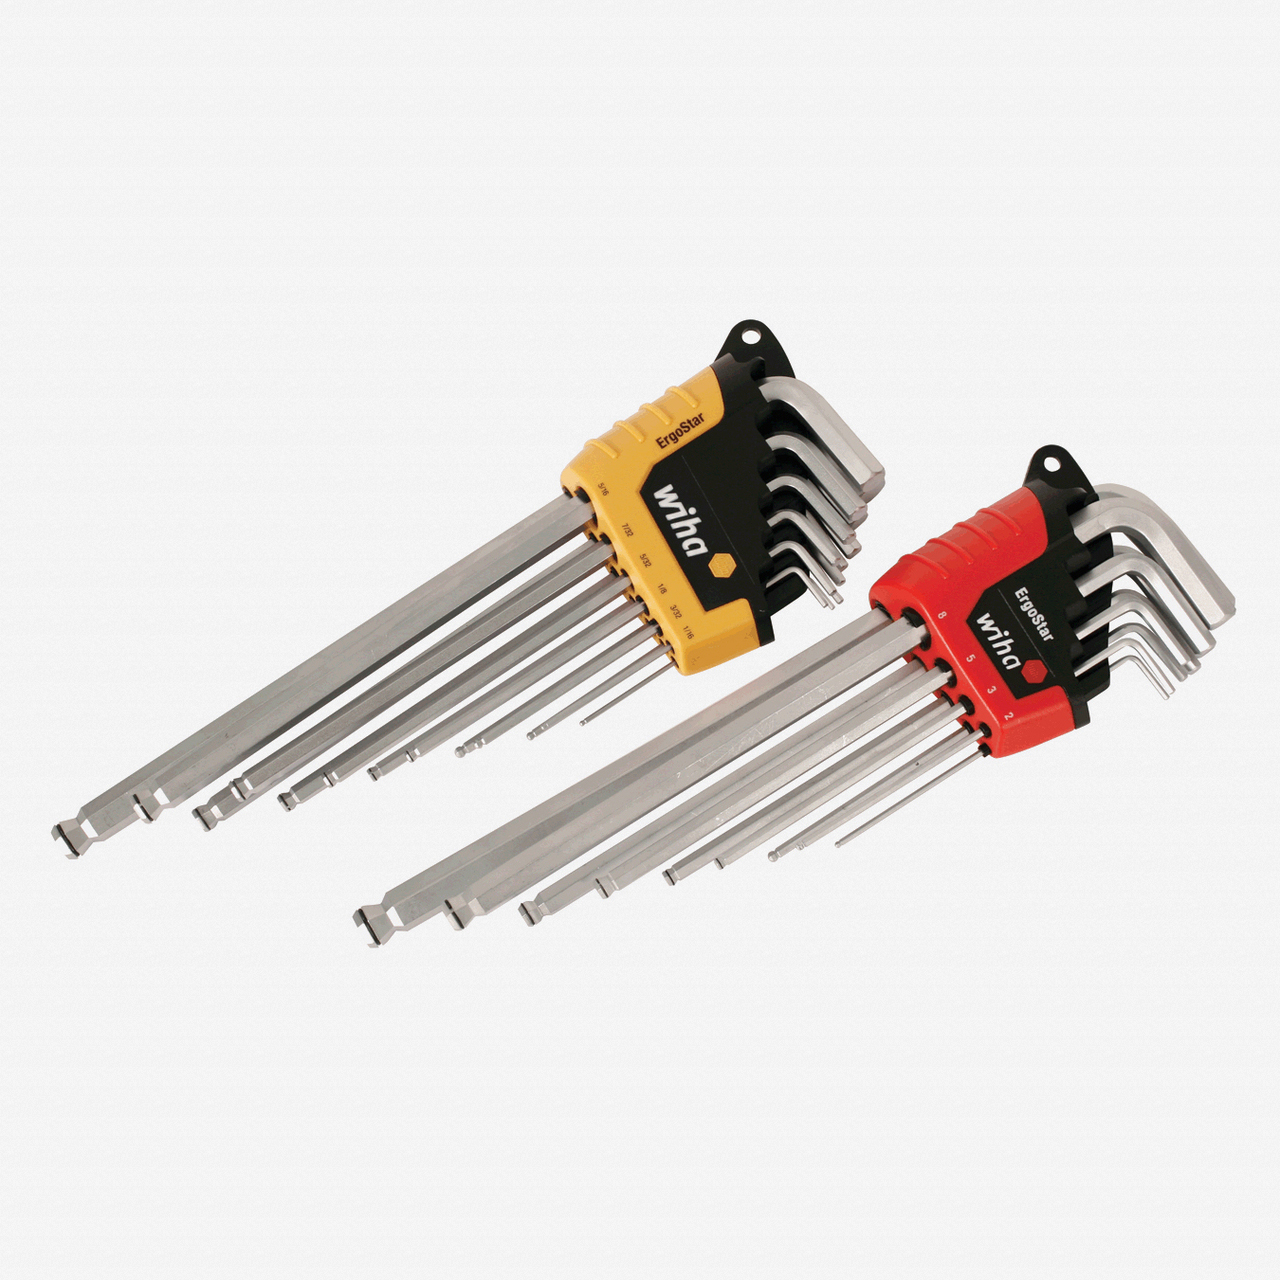 Wiha 66992 22 Piece ErgoStar MagicRing Ball End Hex L-Key Inch/Metric Set - KC Tool